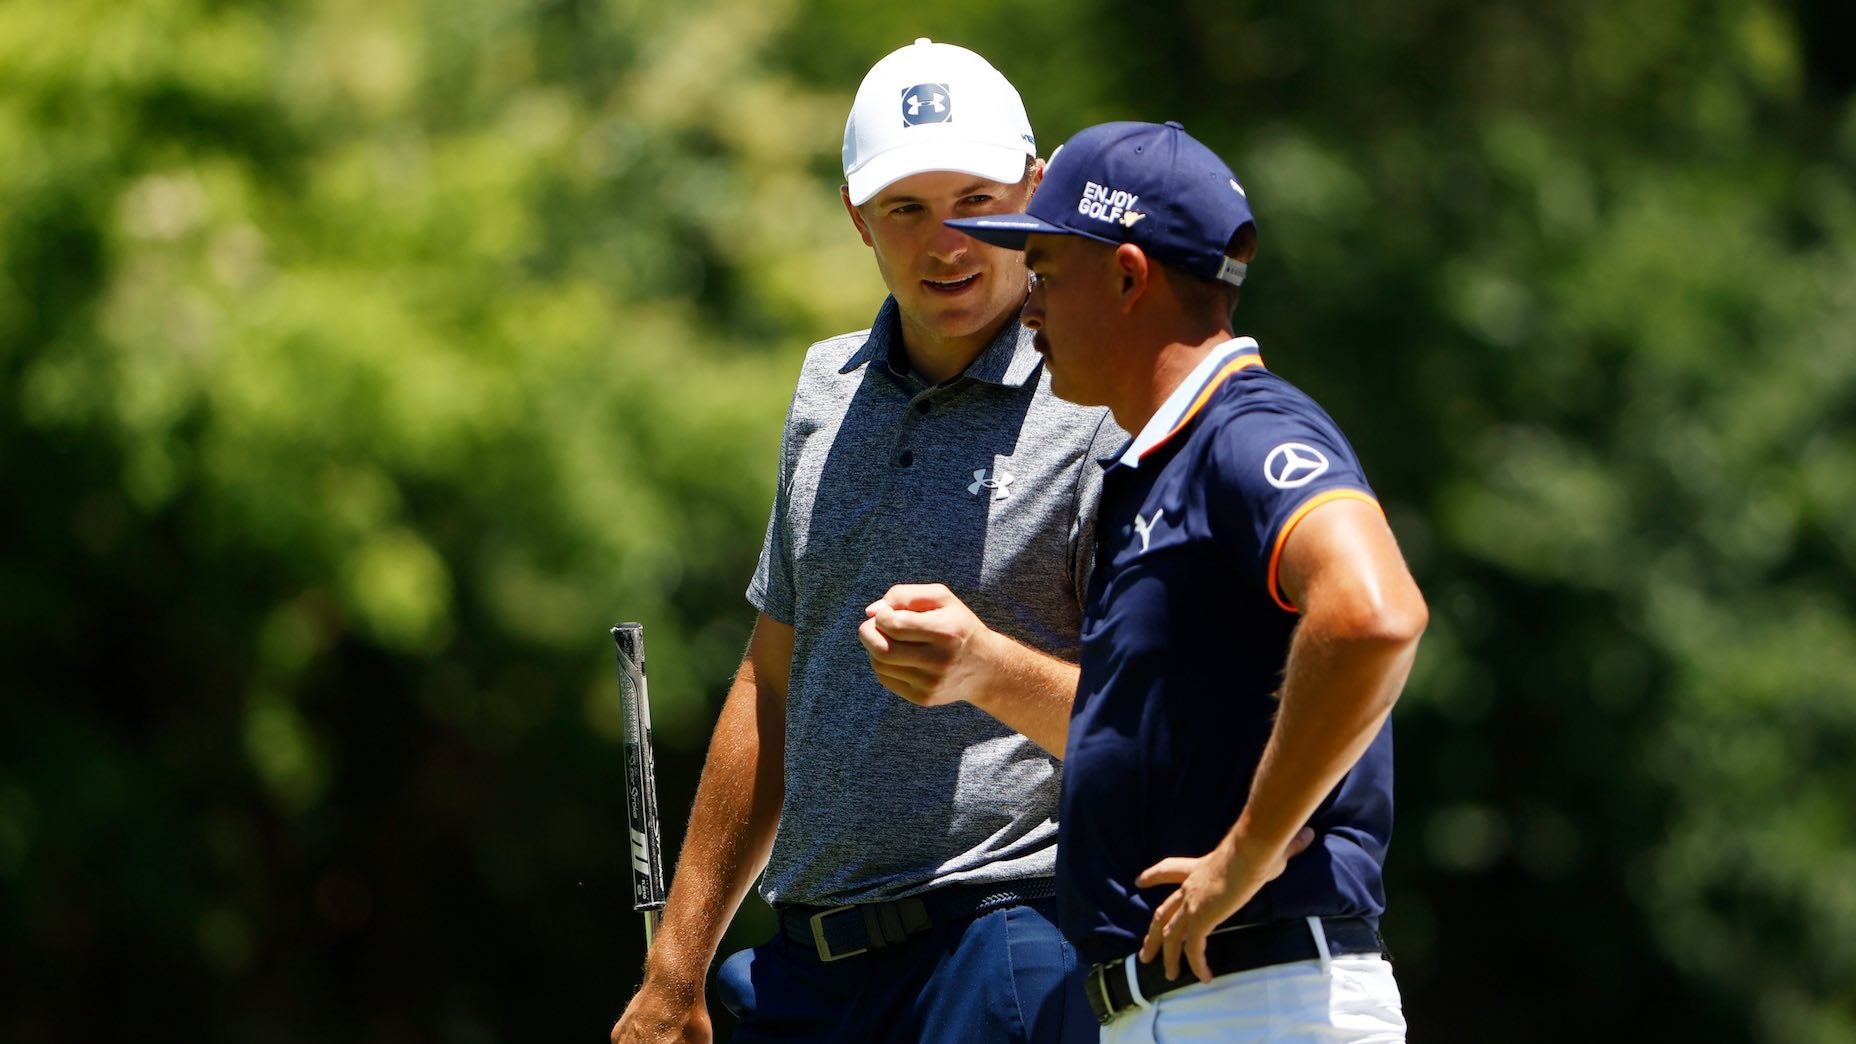 Jordan Spieth and Rickie Fowler have been close friends for years.